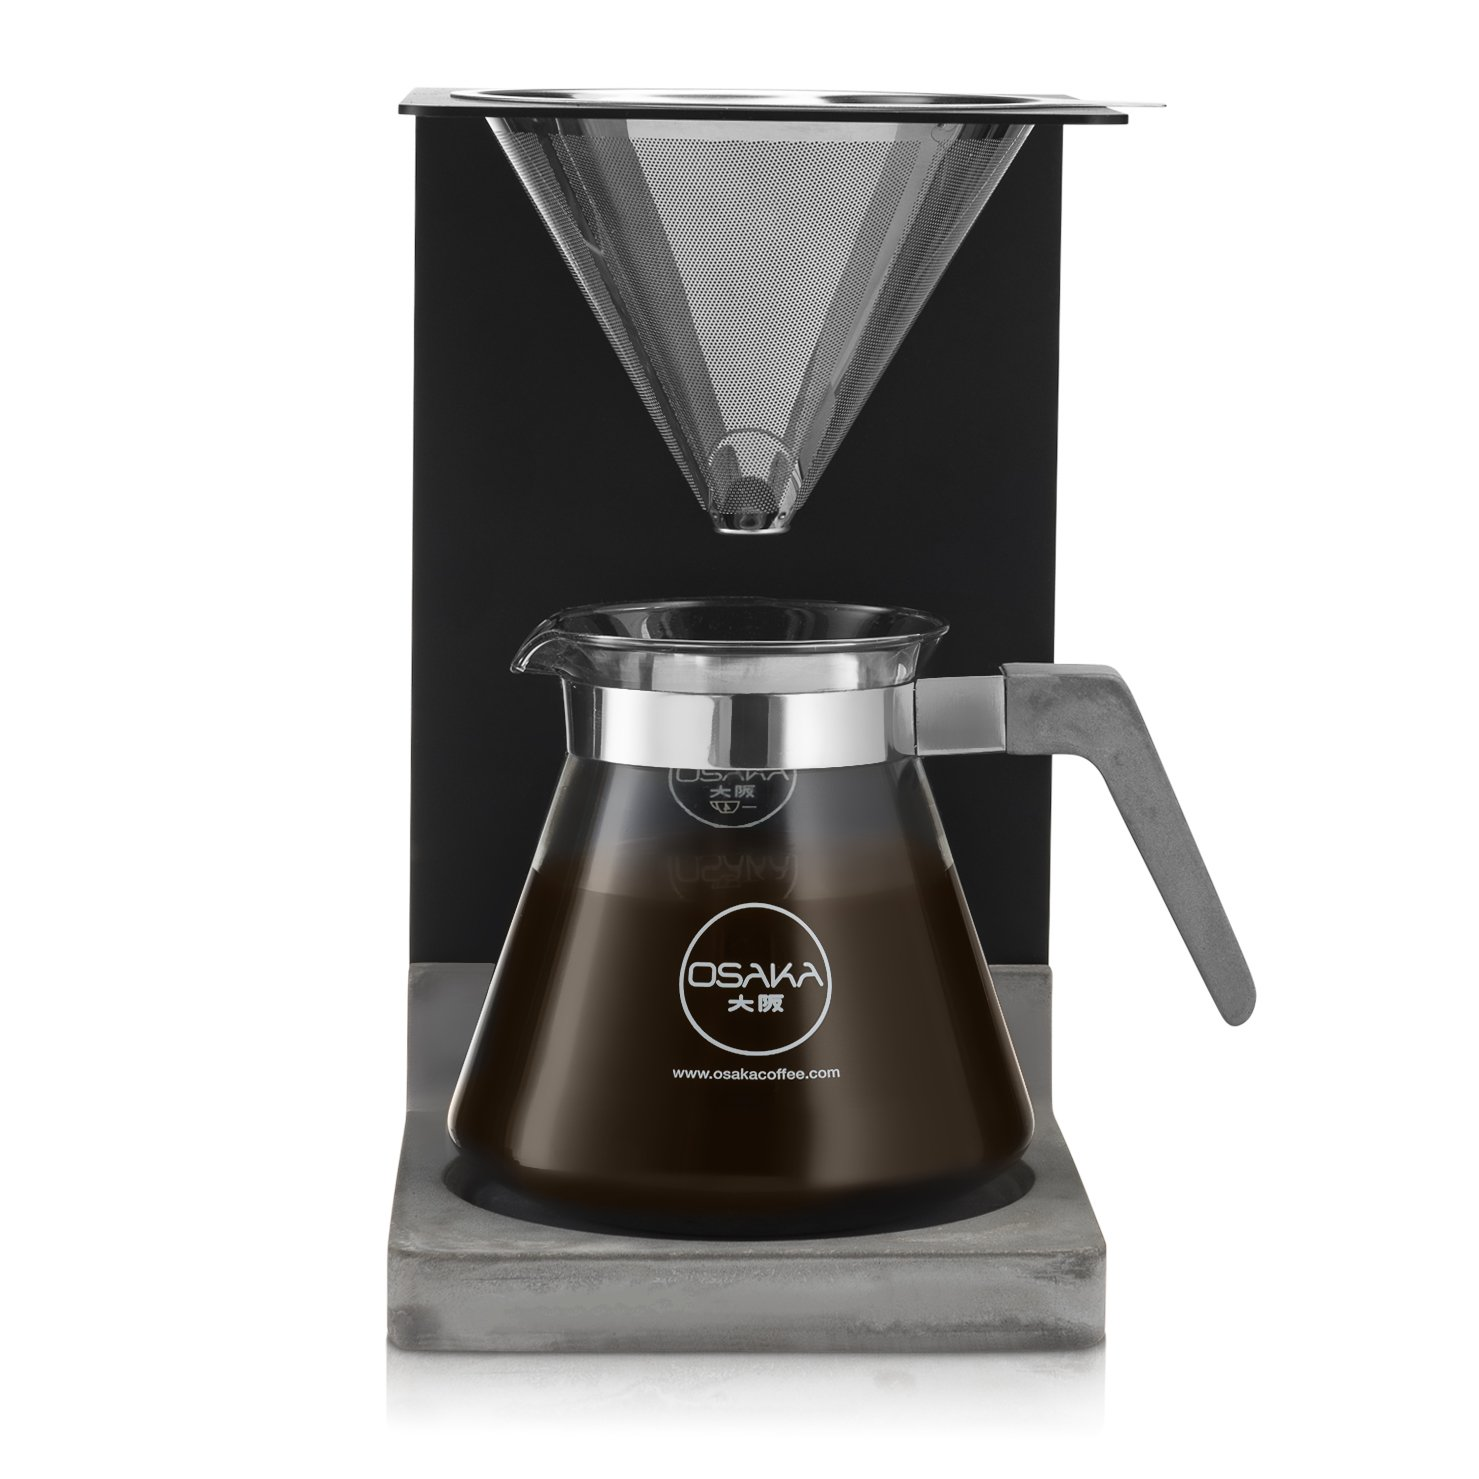 Osaka Concrete Pour-Over Coffee Station - Full Brewing Set for a Homemade Pourover - 20oz. Capacity. ''Mount Aso'' by Osaka